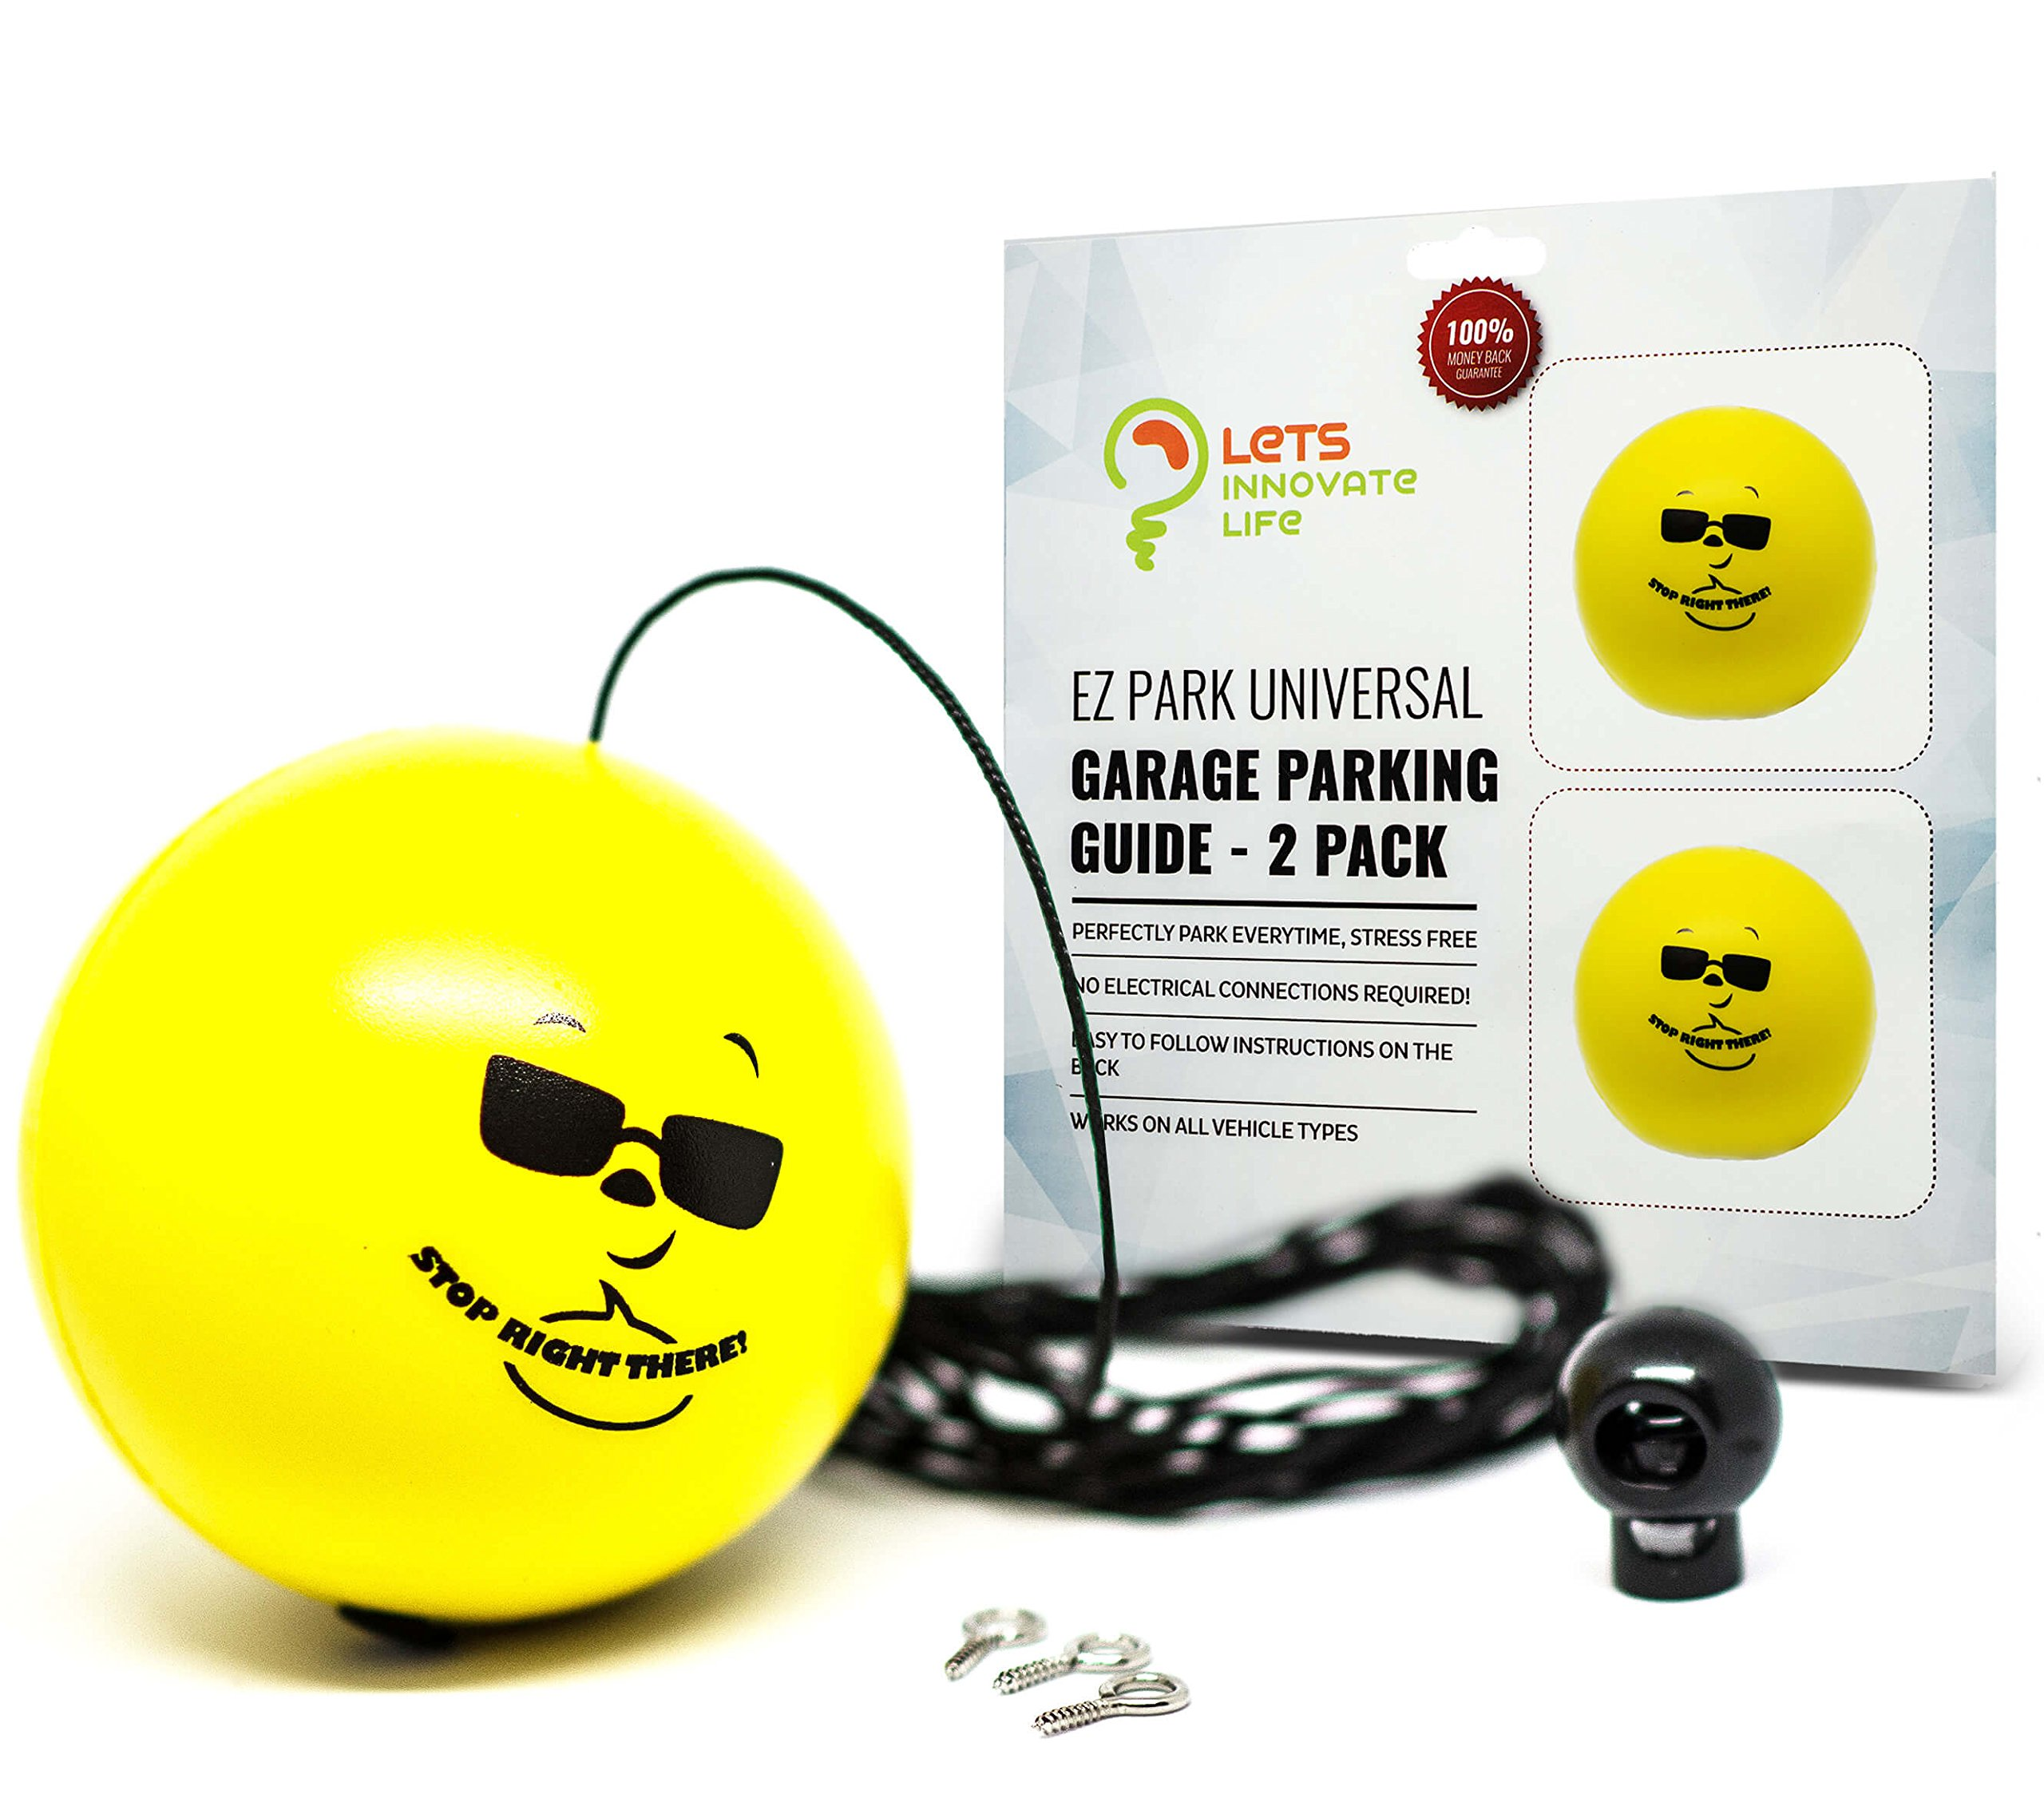 Double Garage Parking Aid - Ball Guide System. Simple to install adjustable parking assistant kit includes a retracting ball sensor assist solution. Perfect Garage Car Stop Indicator for all Vehicles by LetsInnovateLife (Image #1)